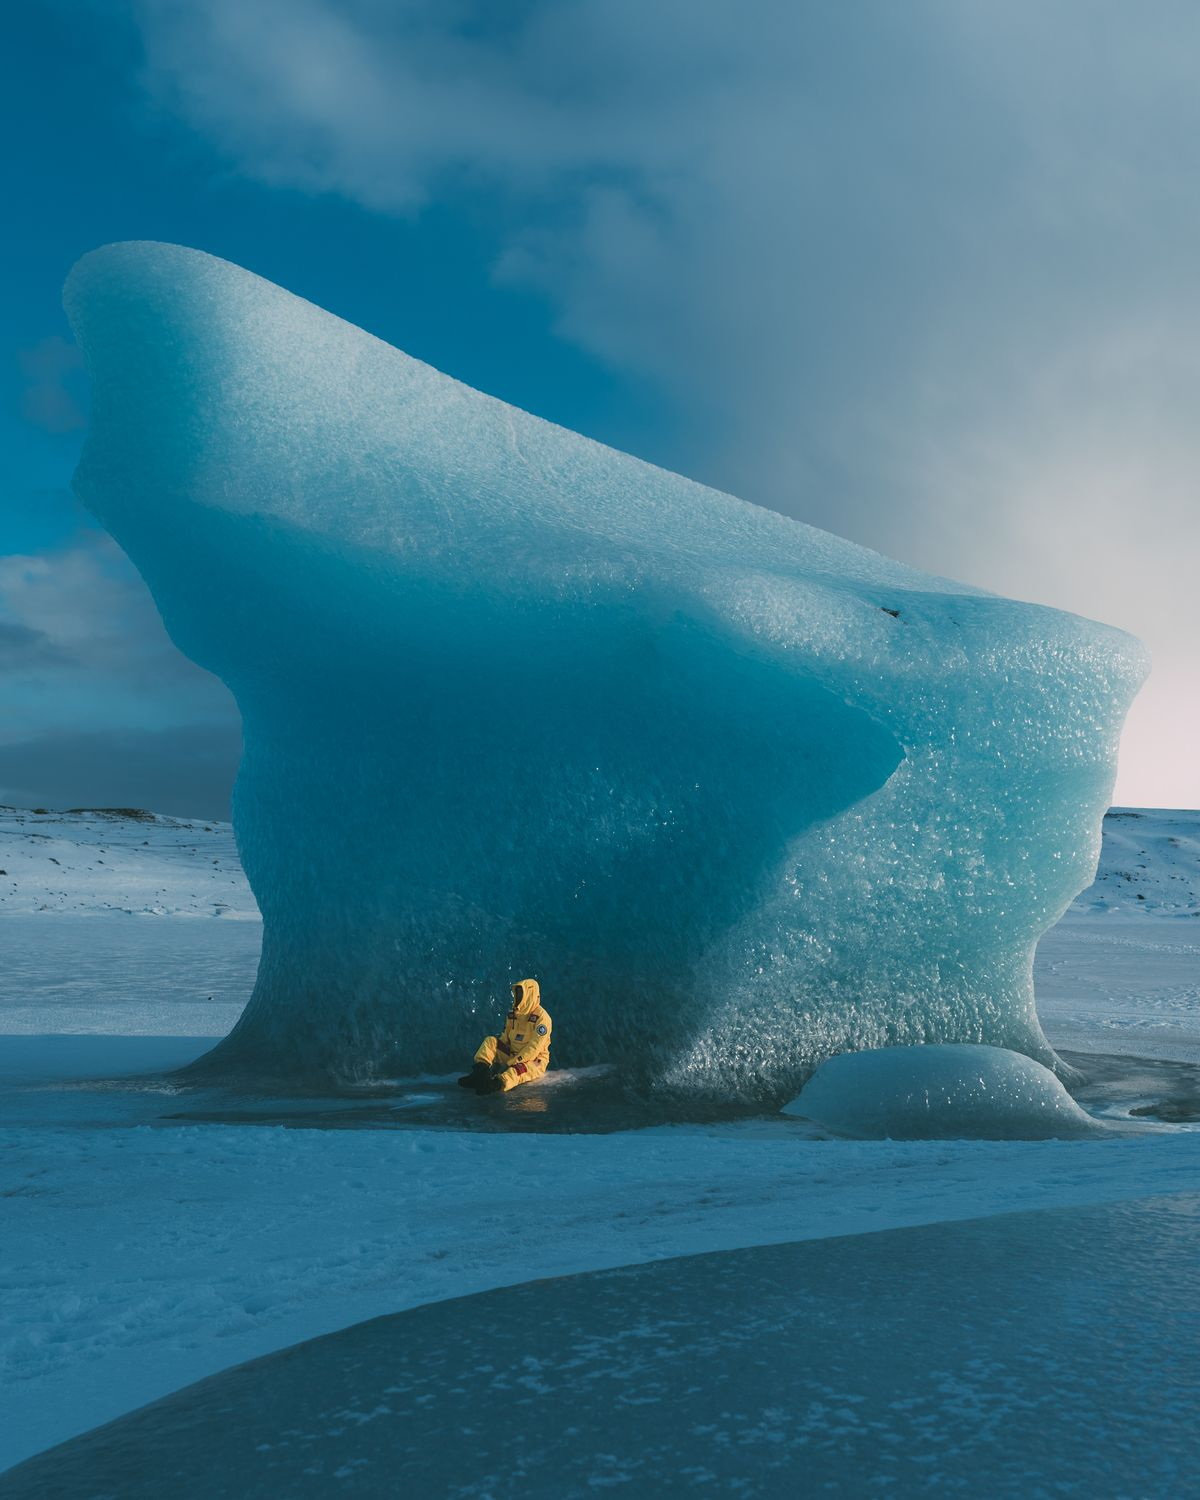 Iceland glacier photography for North Face by Andrew Ling and Connor Surdi.